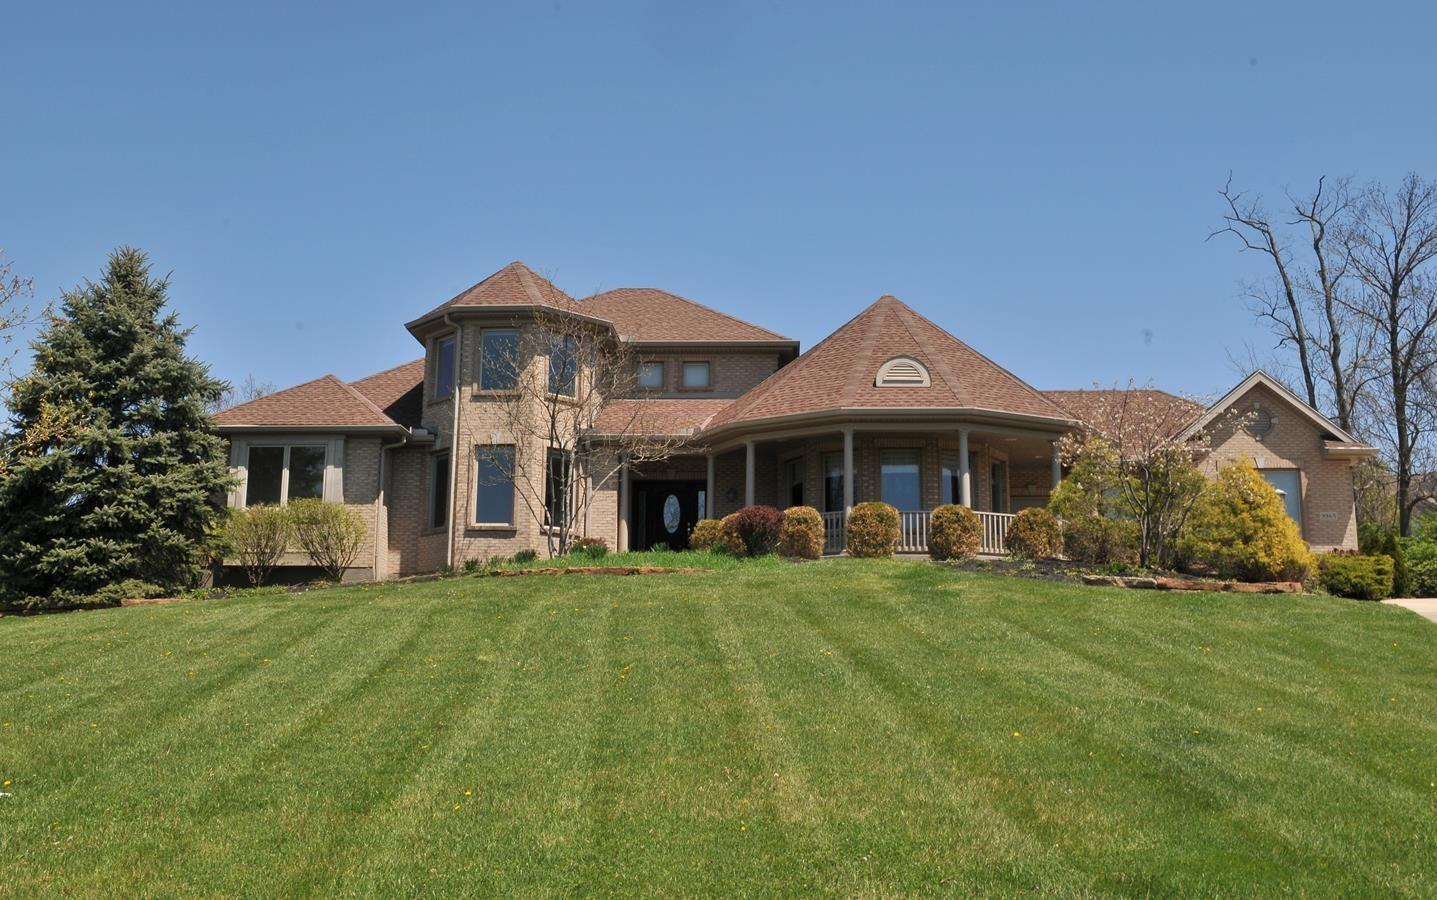 9965 Thoroughbred Ln Springfield Twp., OH